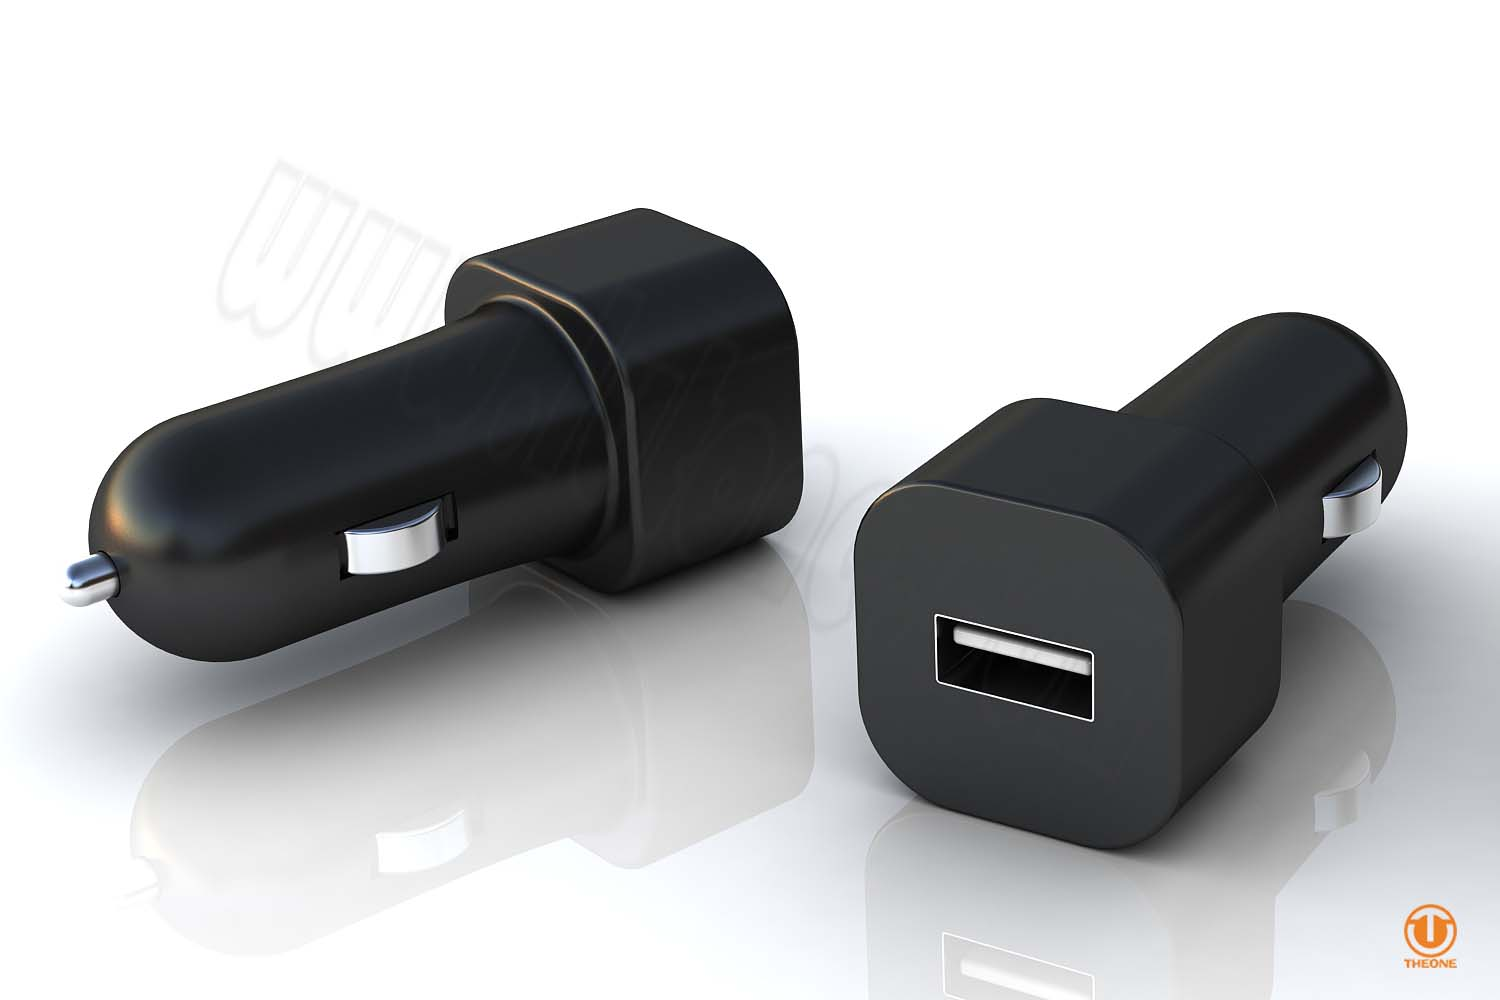 tc02a0-4 mini usb car charger